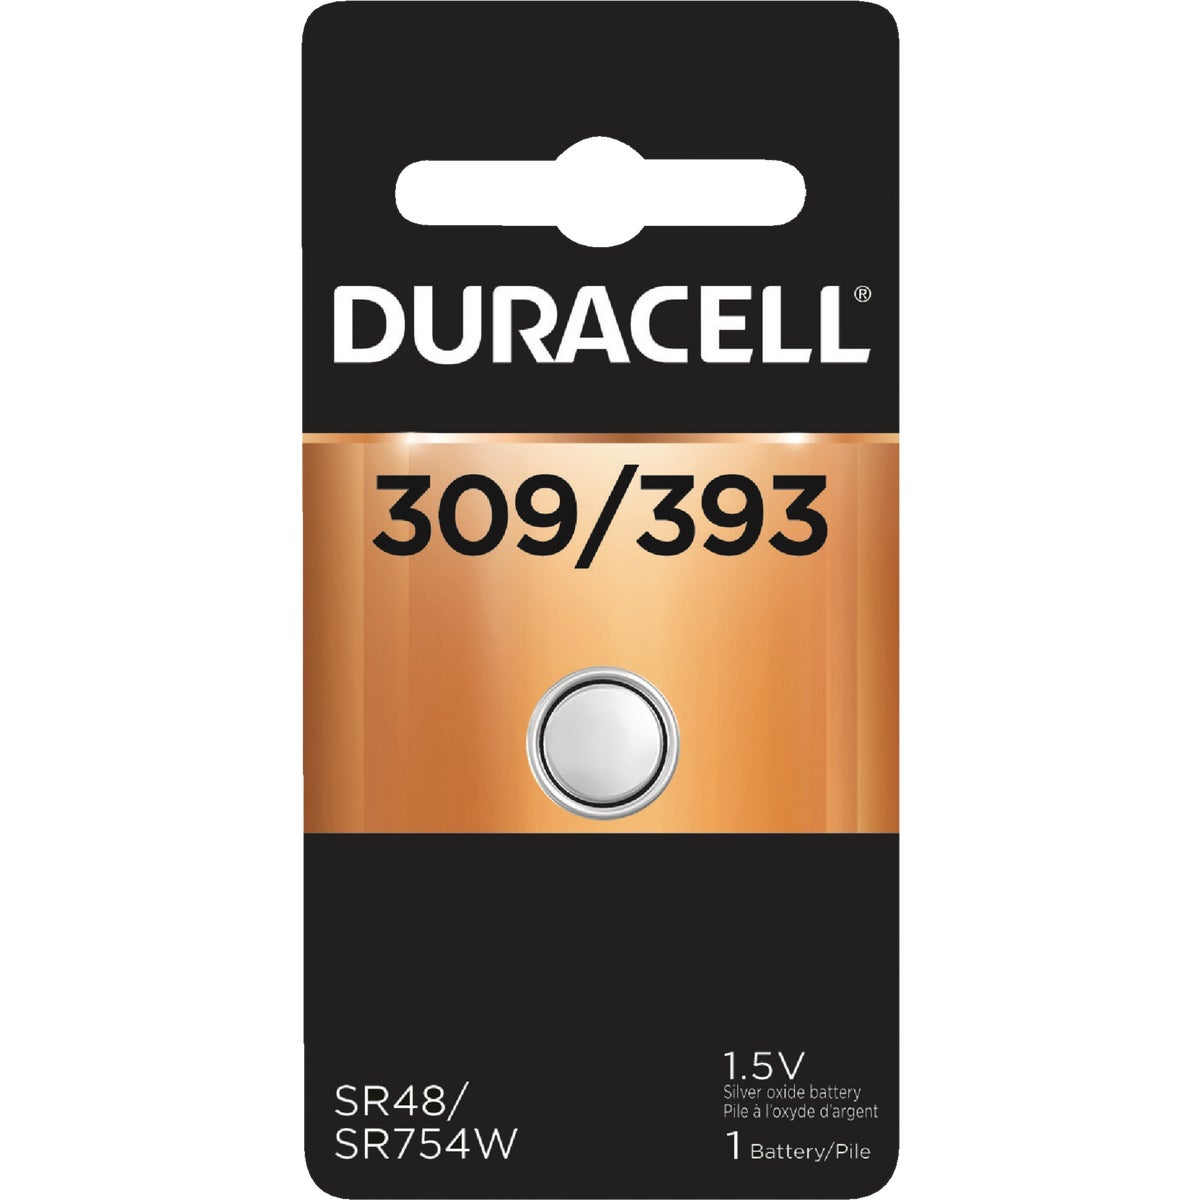 D309/393 1.5V WA BATTERY - 40287 by P & G  Duracell